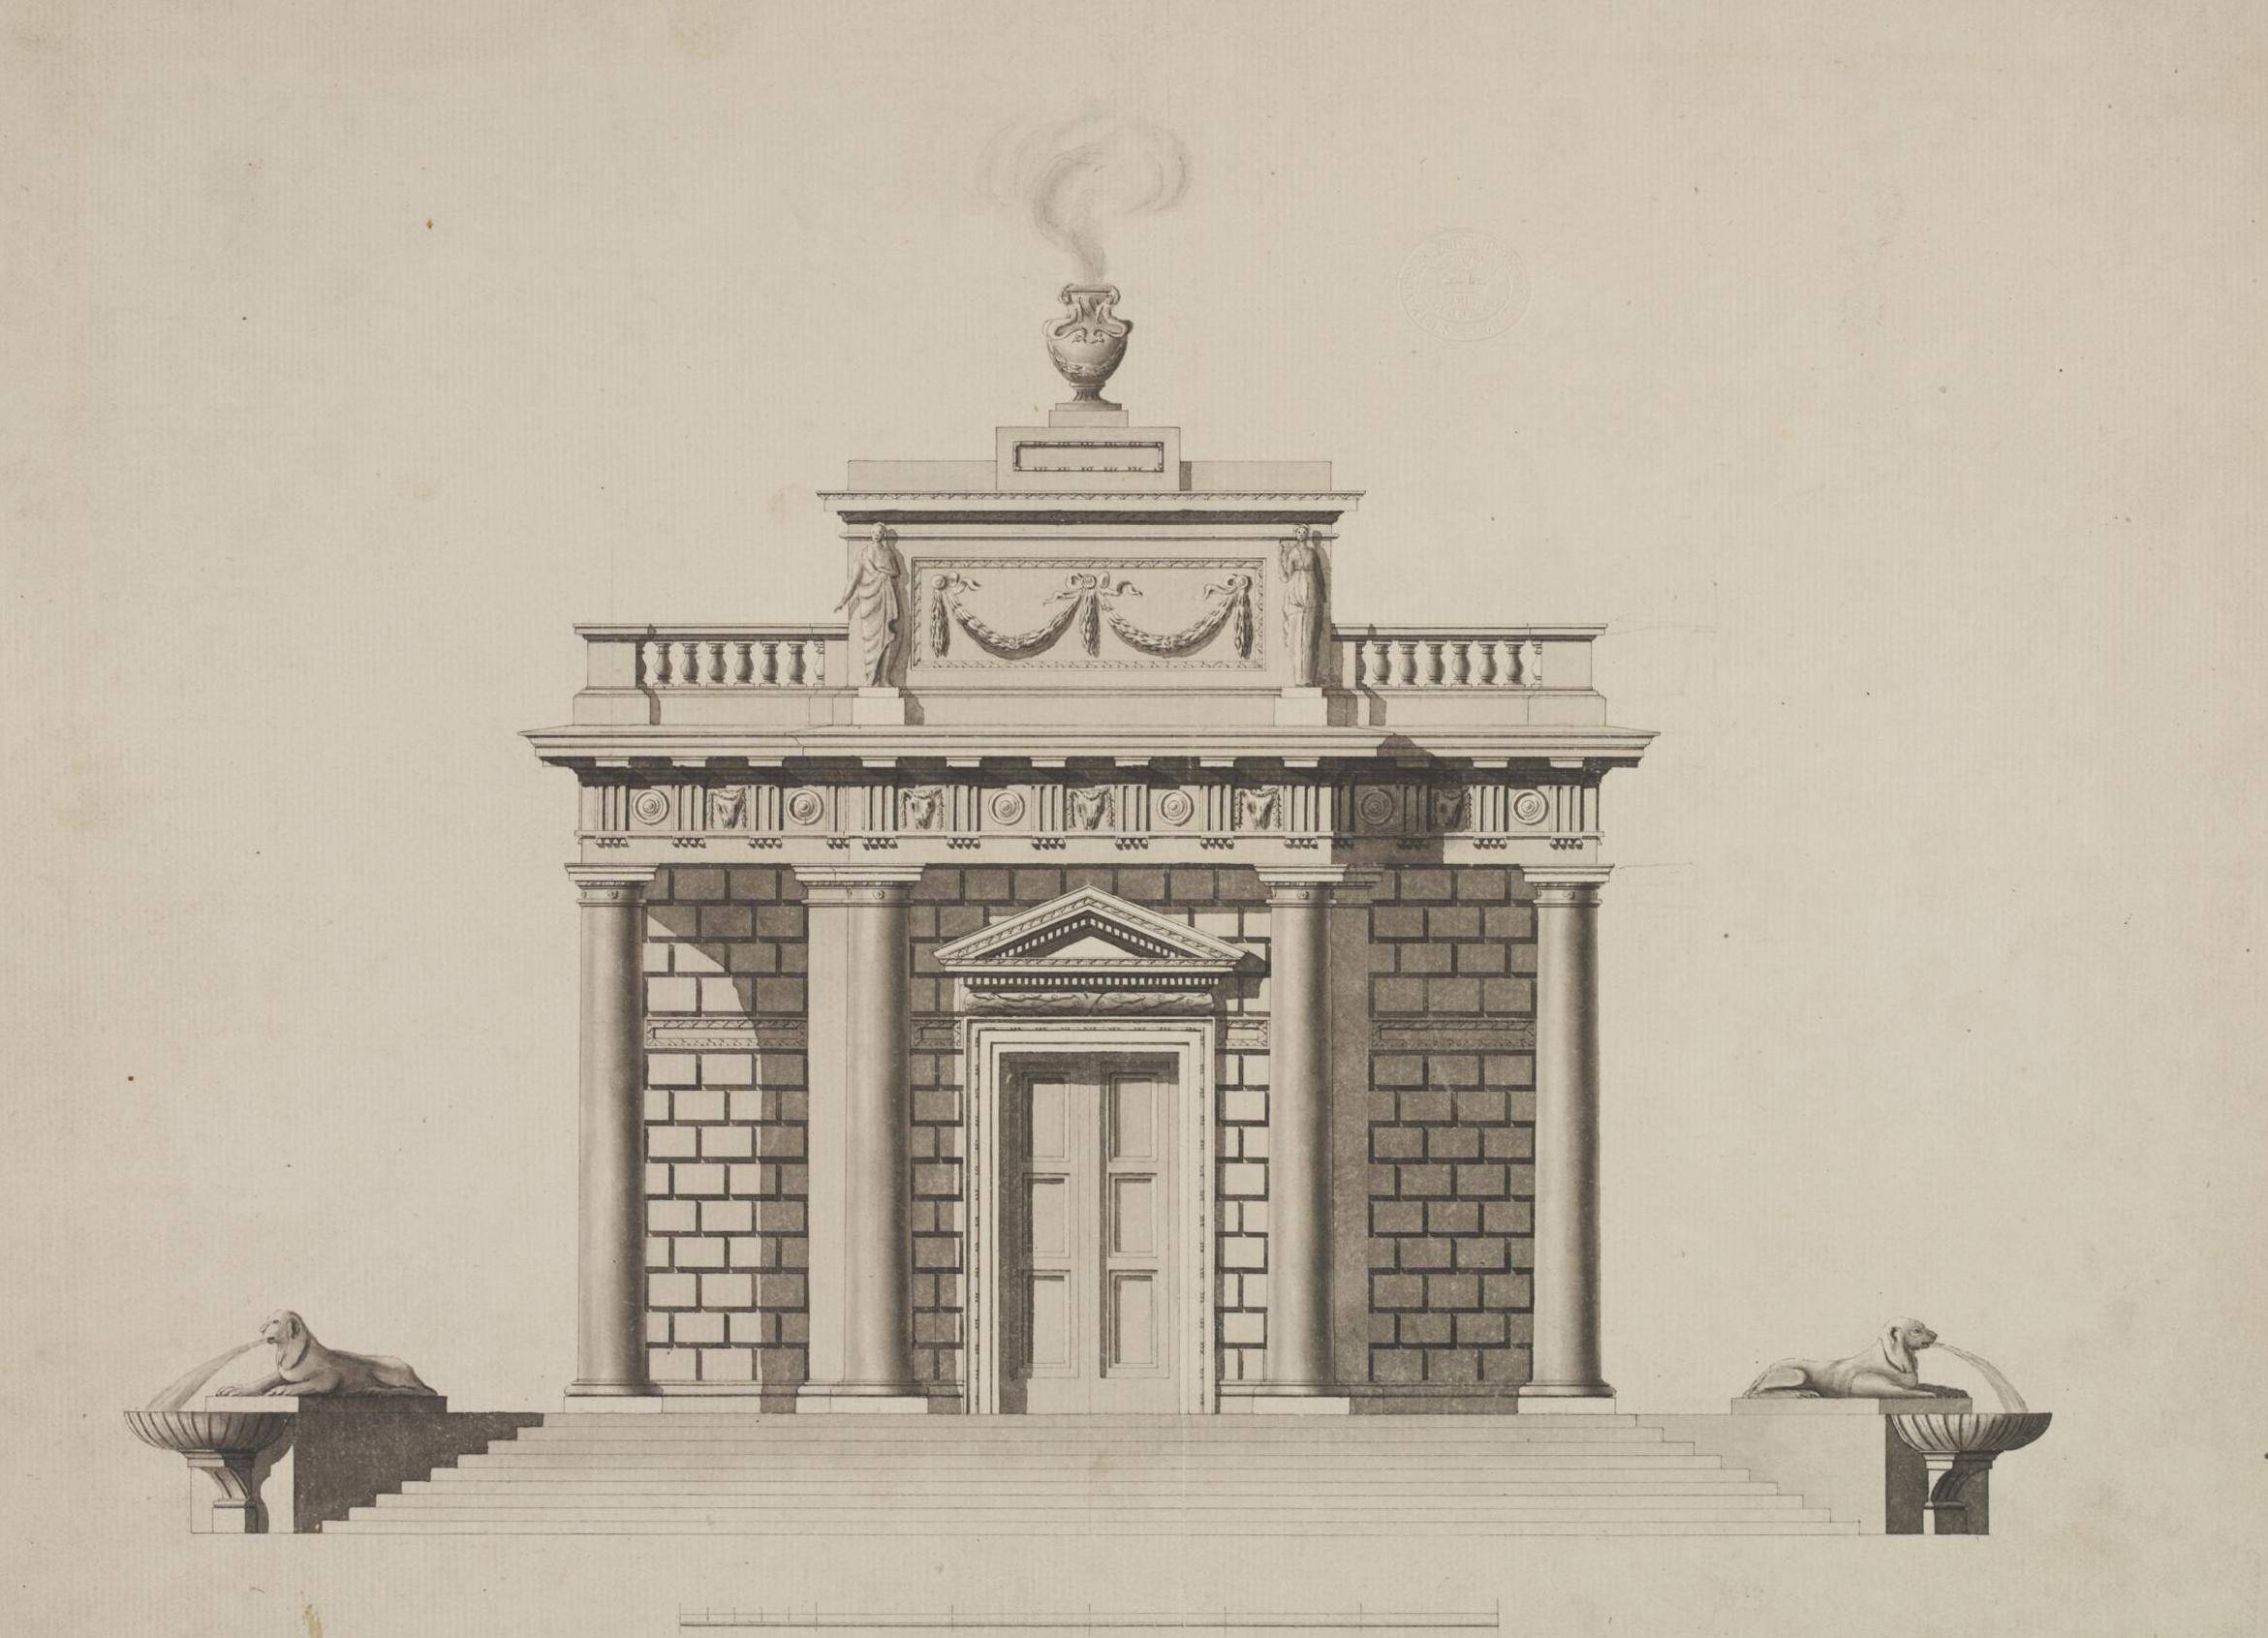 Elevation showing the entrance front of the Casino at Marino House, County Dublin for the 1st Earl of Charlemont, 18th century, Sir William Chambers (1723-1796). The Victoria and Albert Museum. This illustration is a version of the plate which appeared in Chambers' Treatise on Civil Architecture (1759).